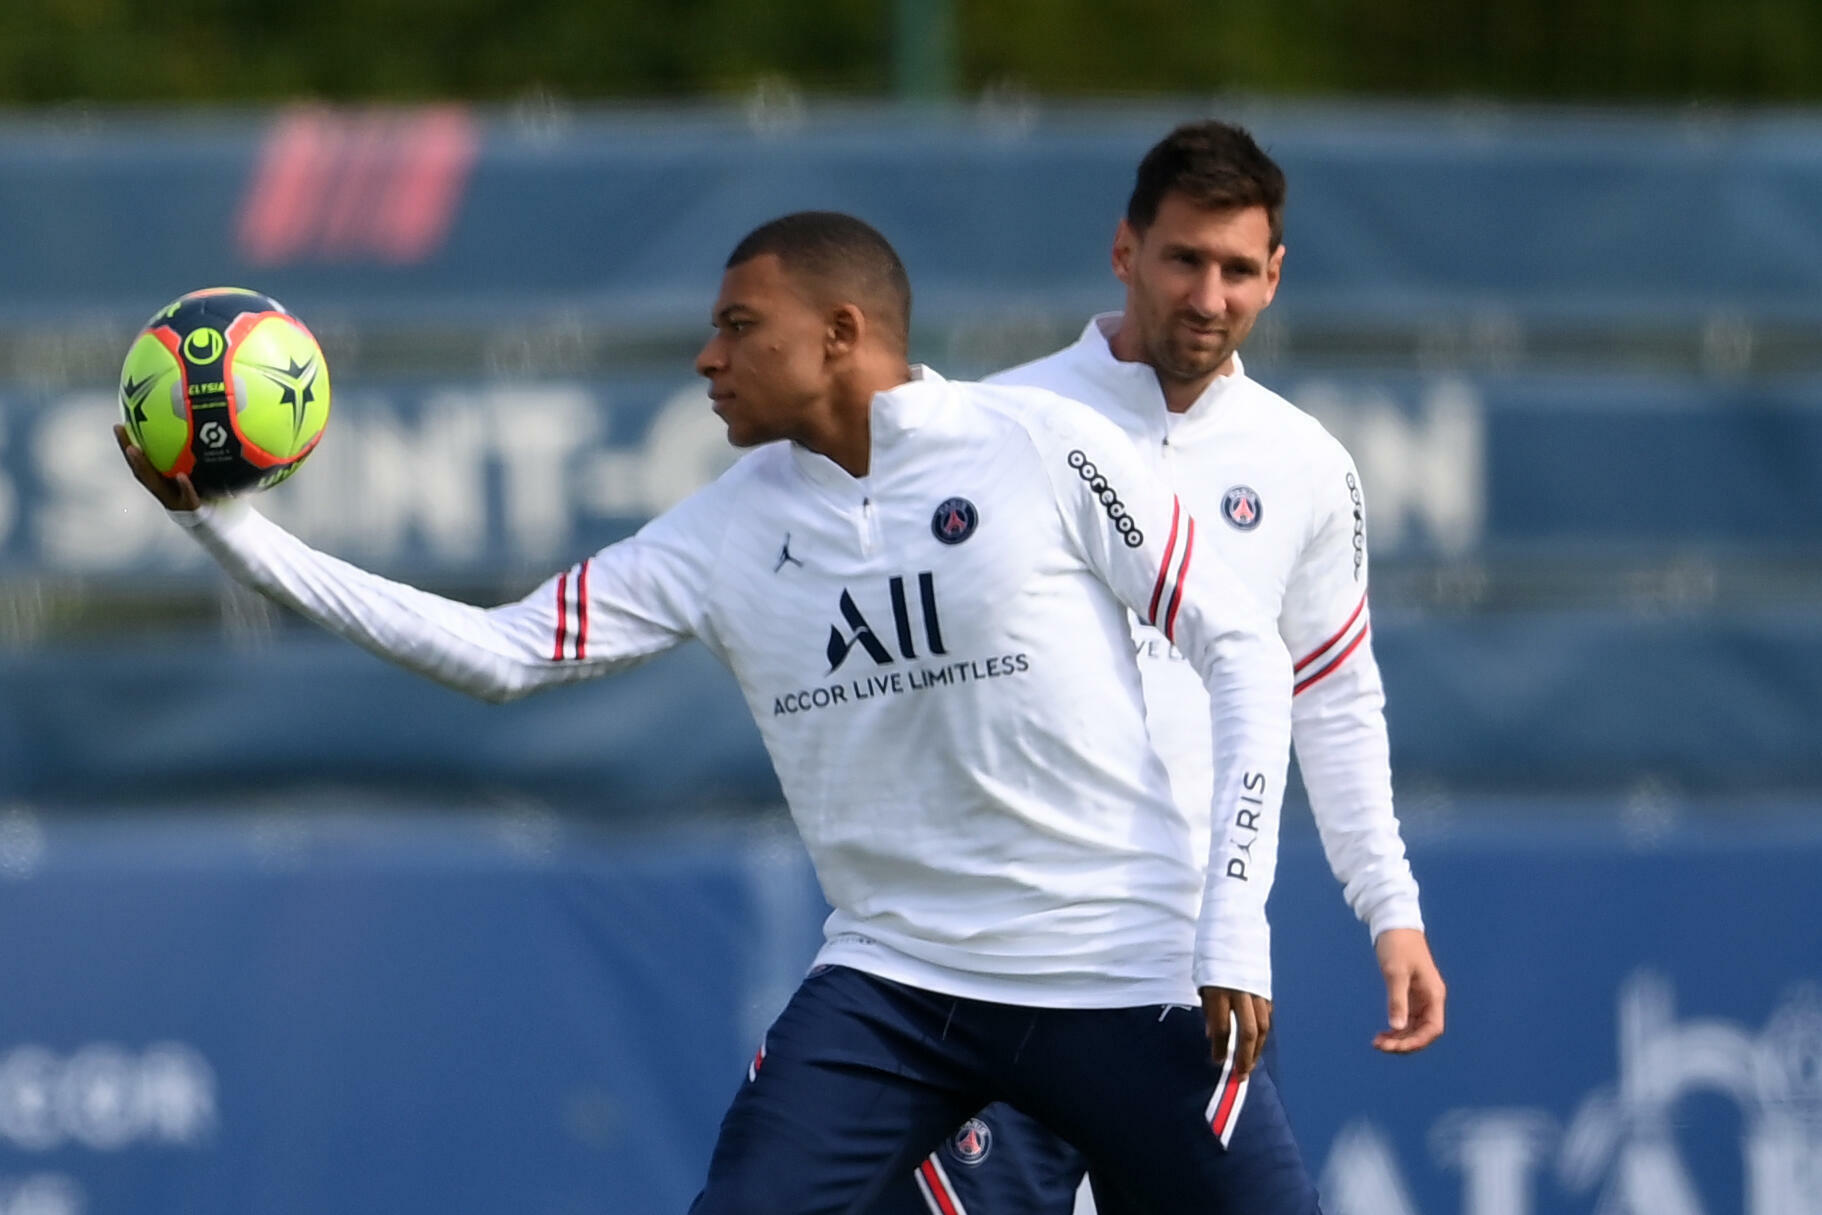 Neymar, Messi back in PSG squad for Champions League opener